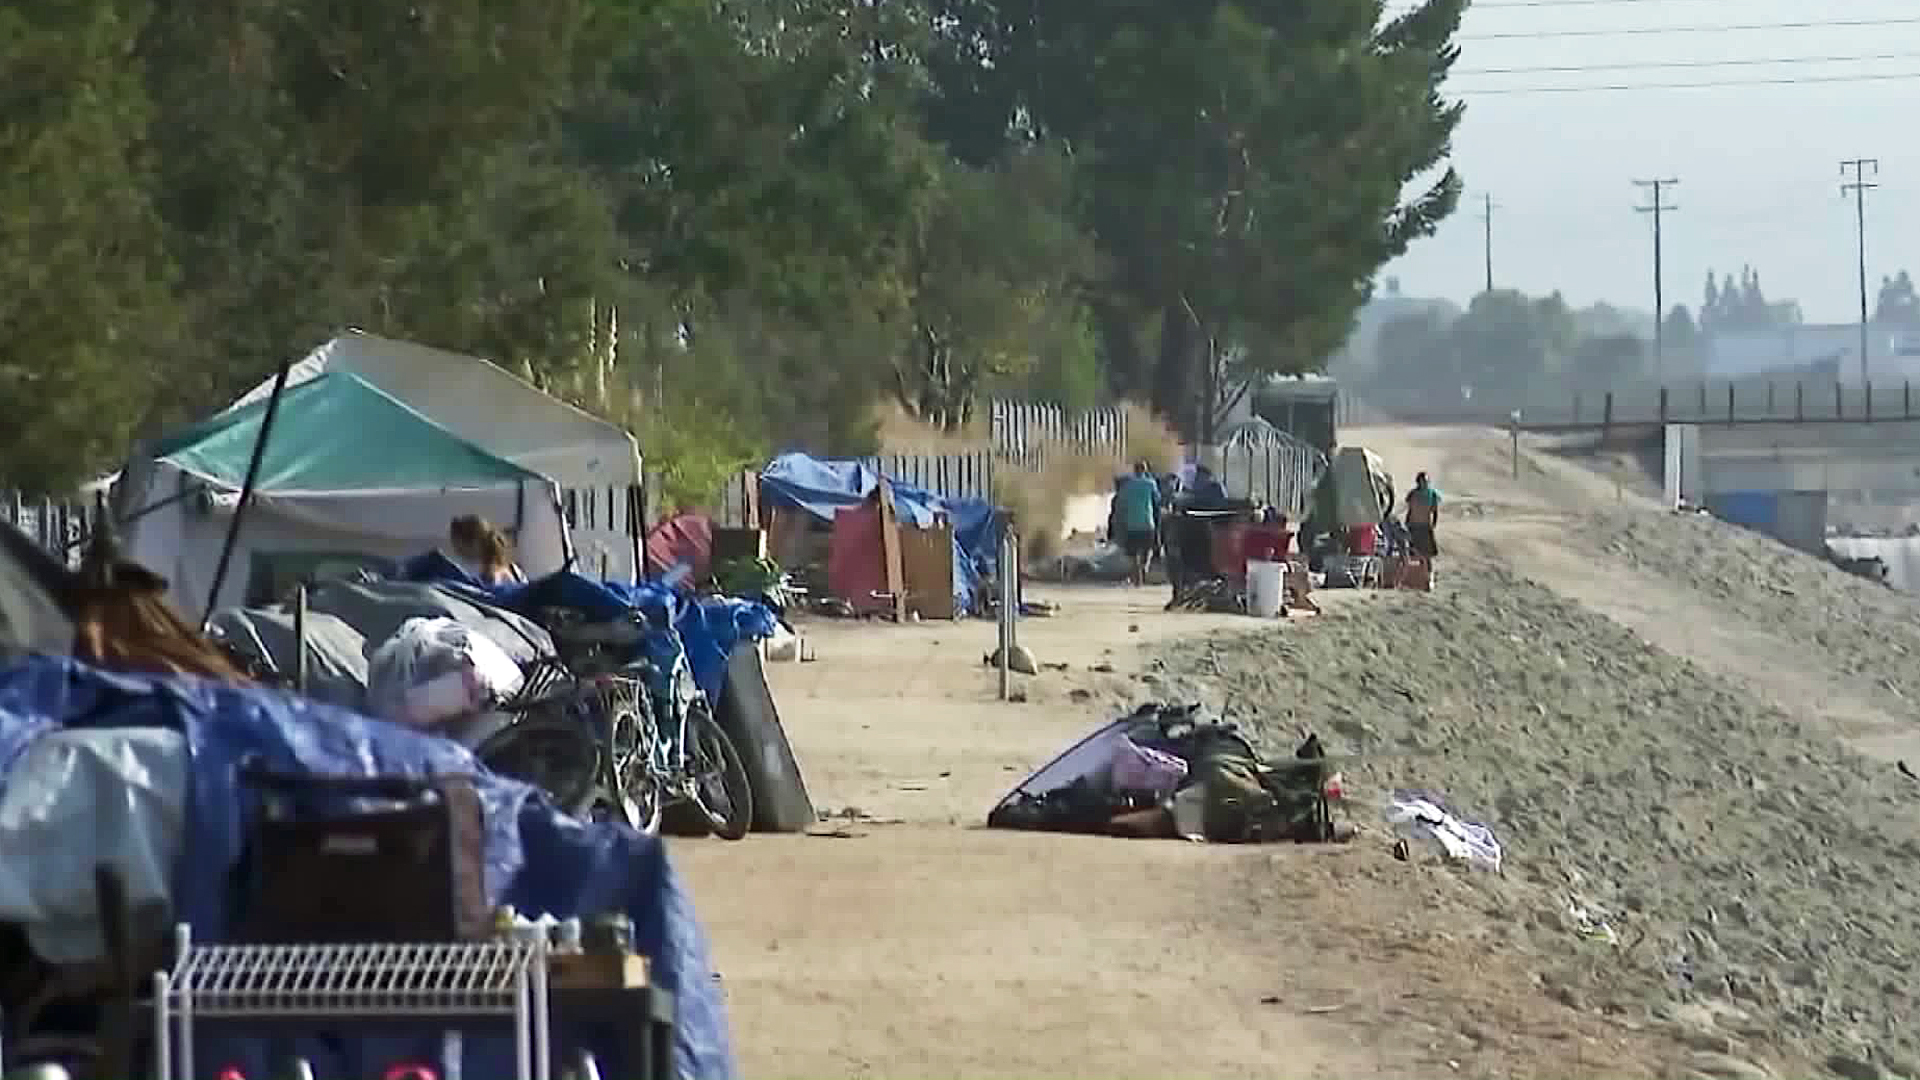 A homeless encampment along the Santa Ana River is seen on Sept. 12, 2017. (Credit: KTLA)